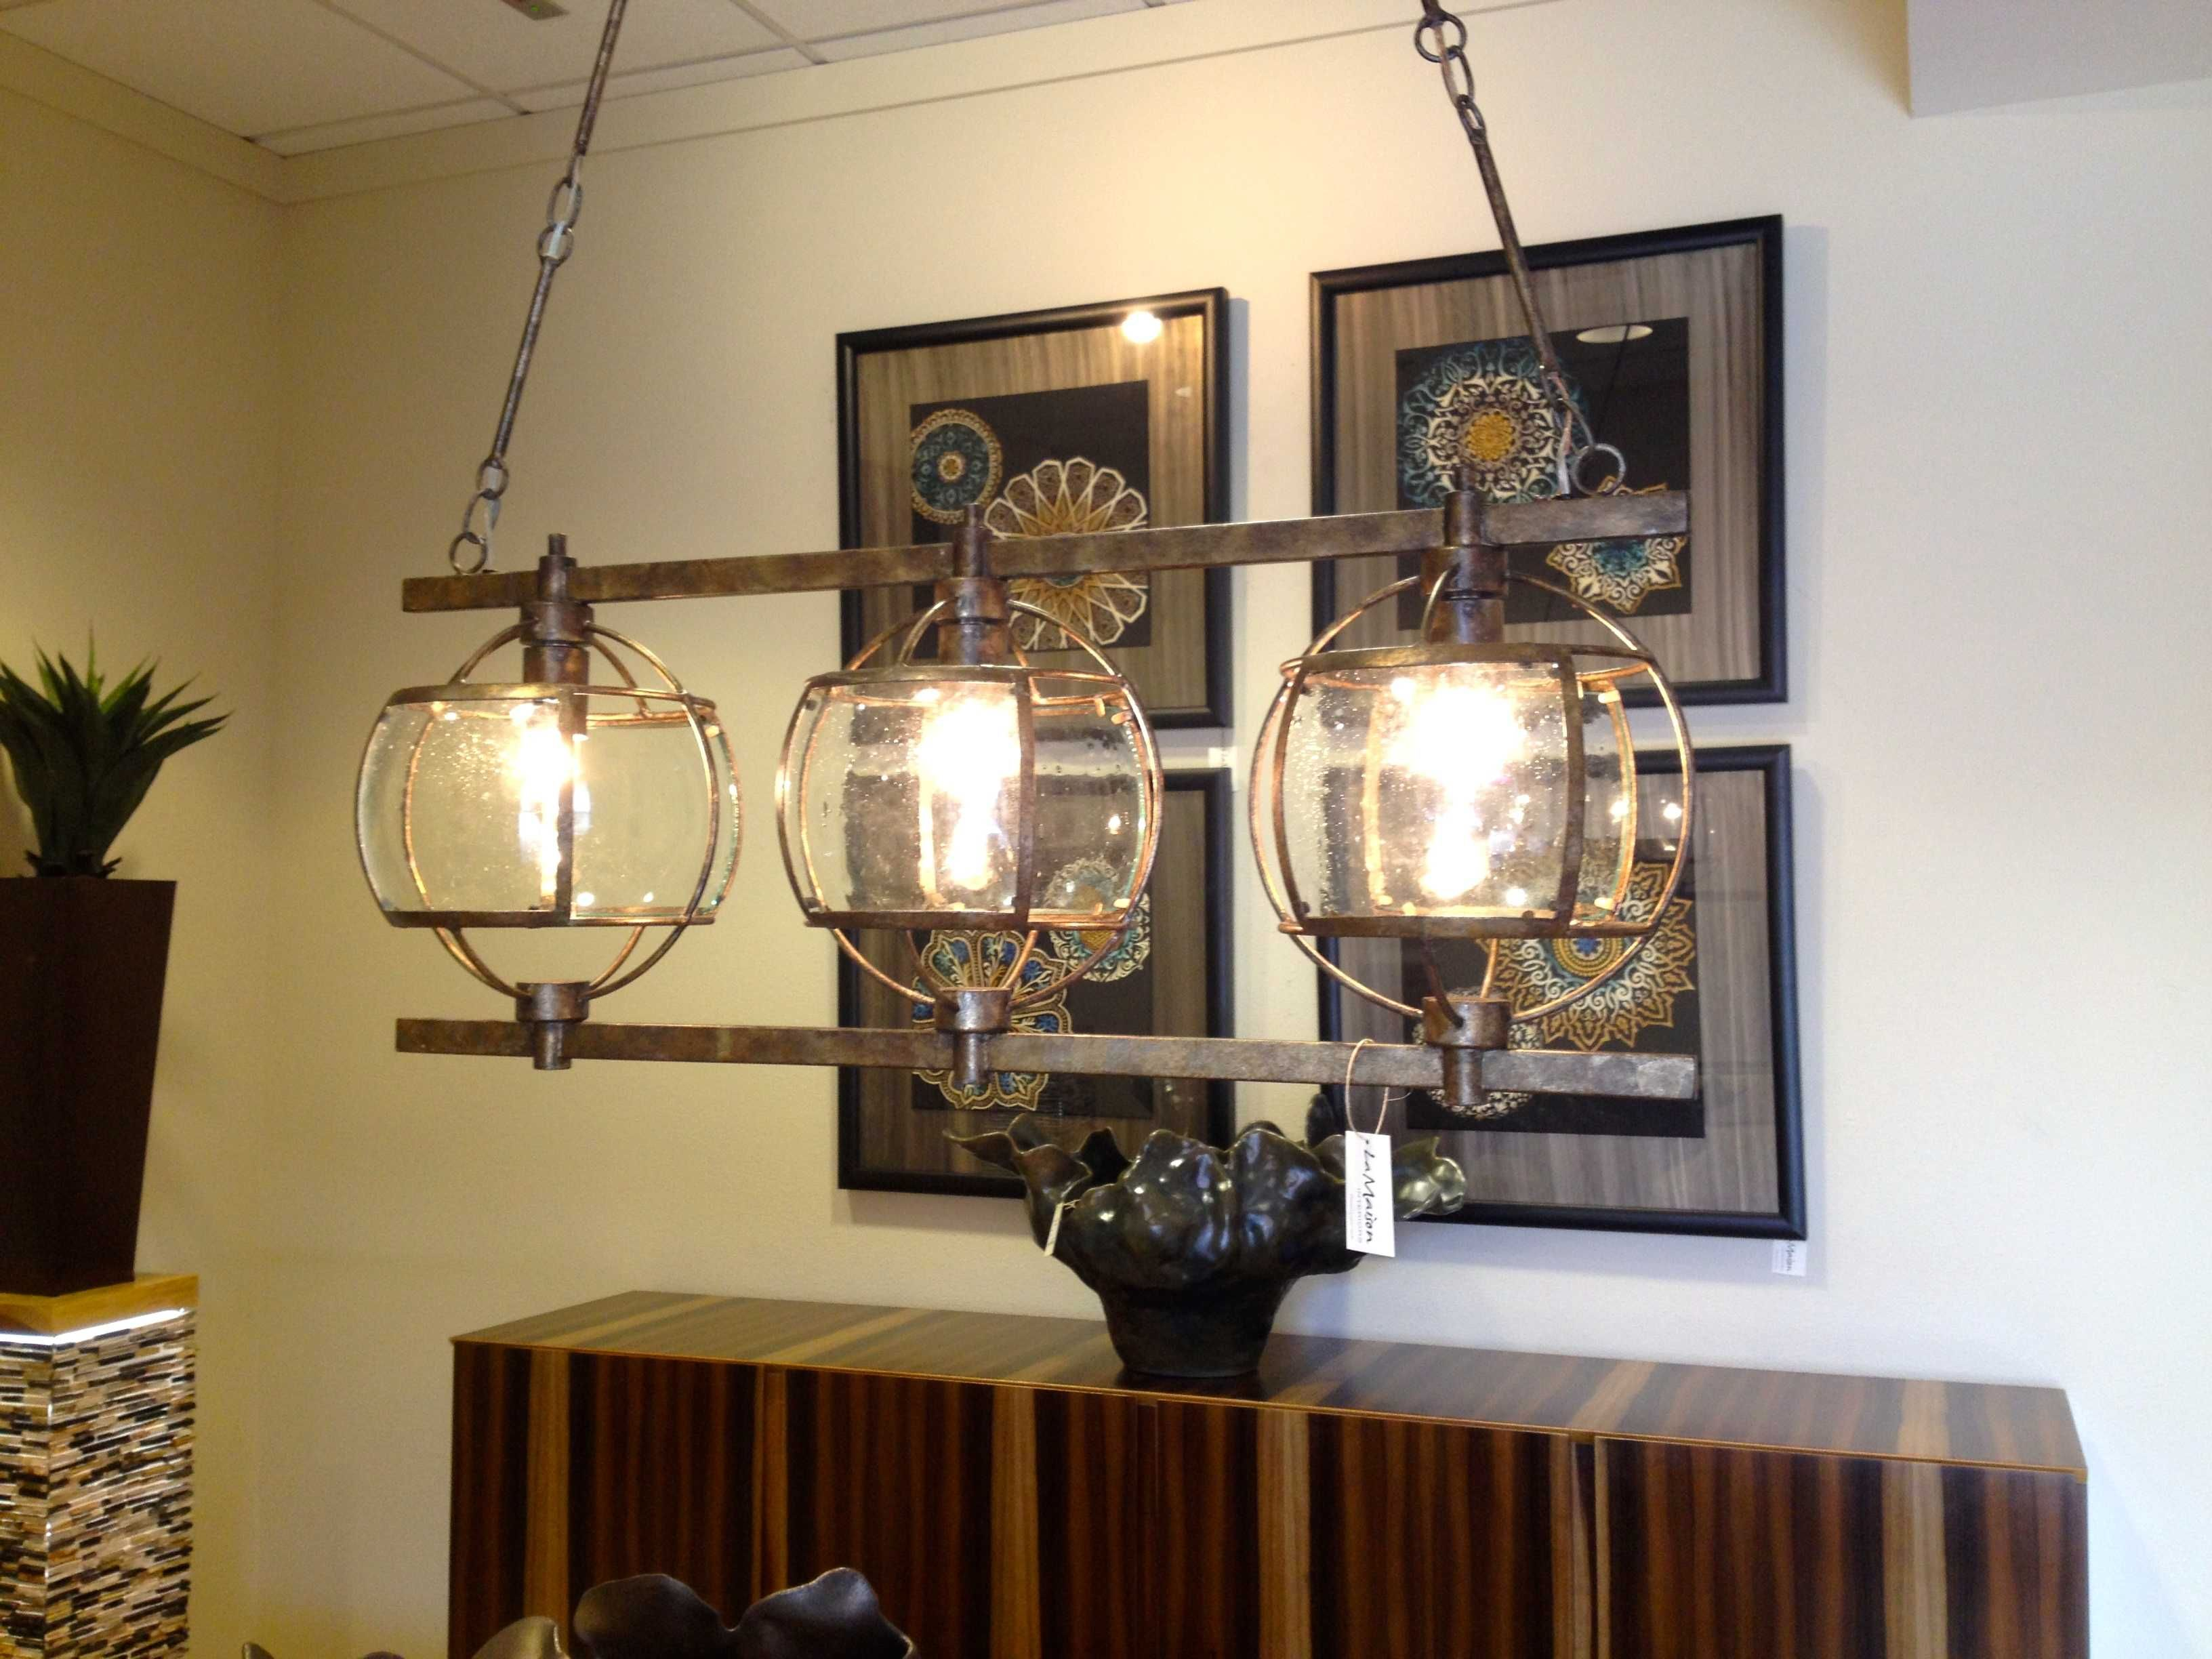 Rustic French Country Chandelier Chandeliers Lowes For Dining Room Ceiling Fans Light Fixtures